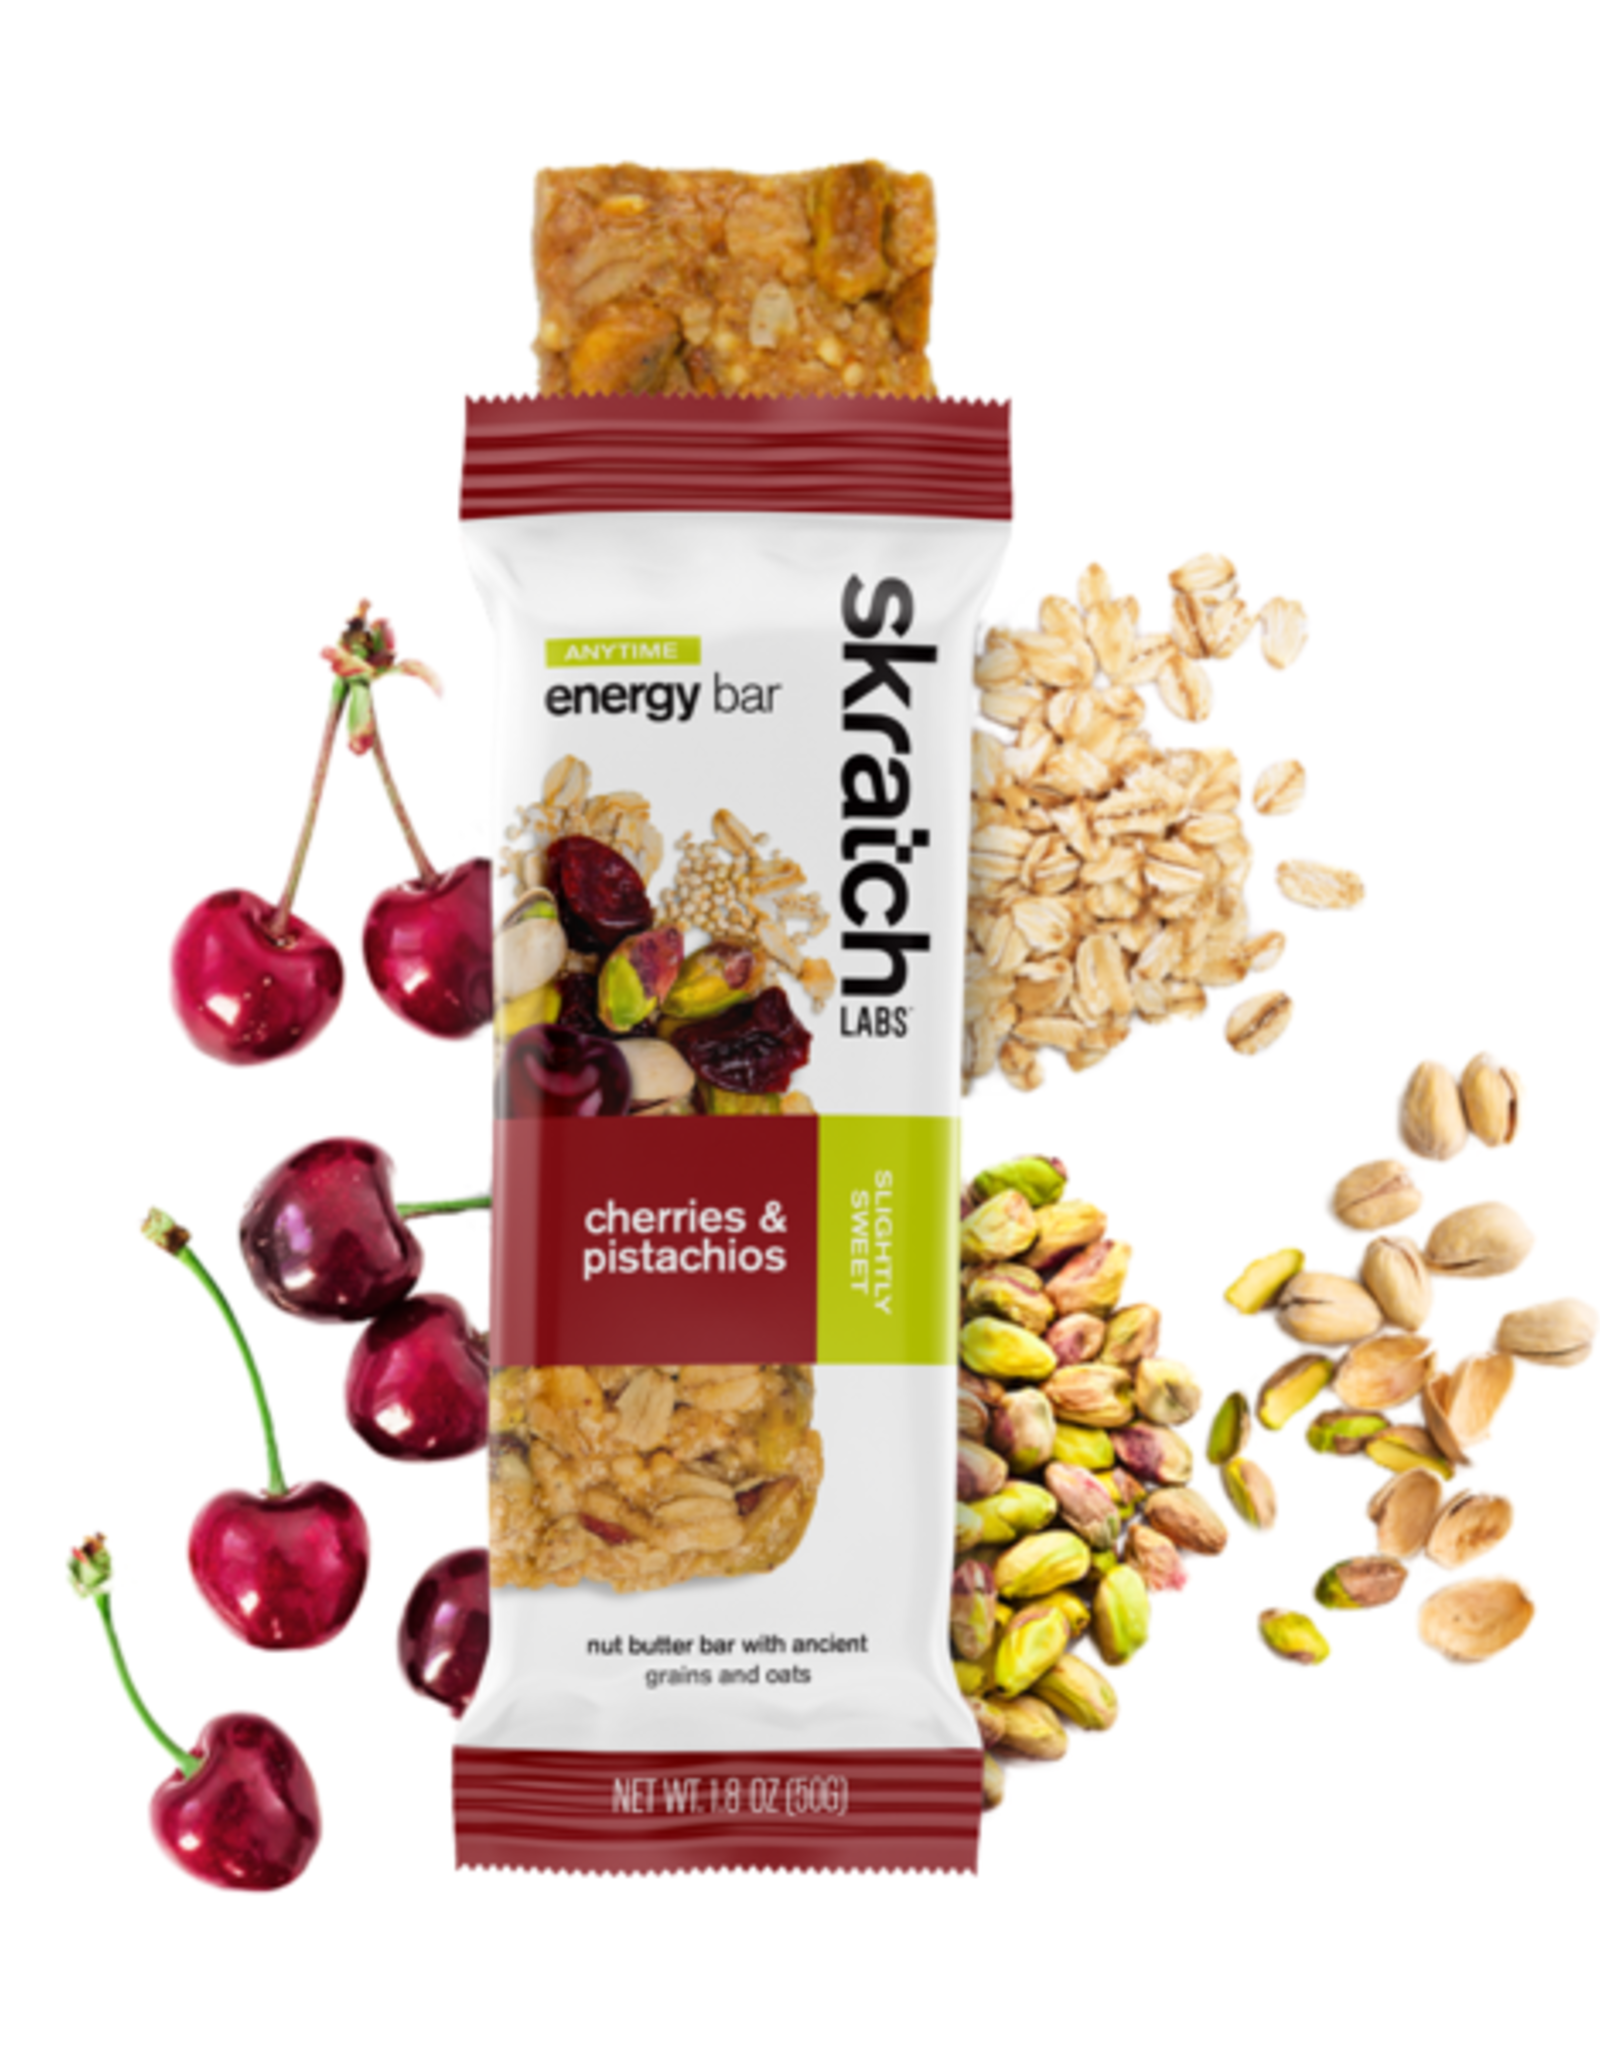 SKRATCH LABS Skratch Labs Anytime Energy Bar - Cherries & Pistachios